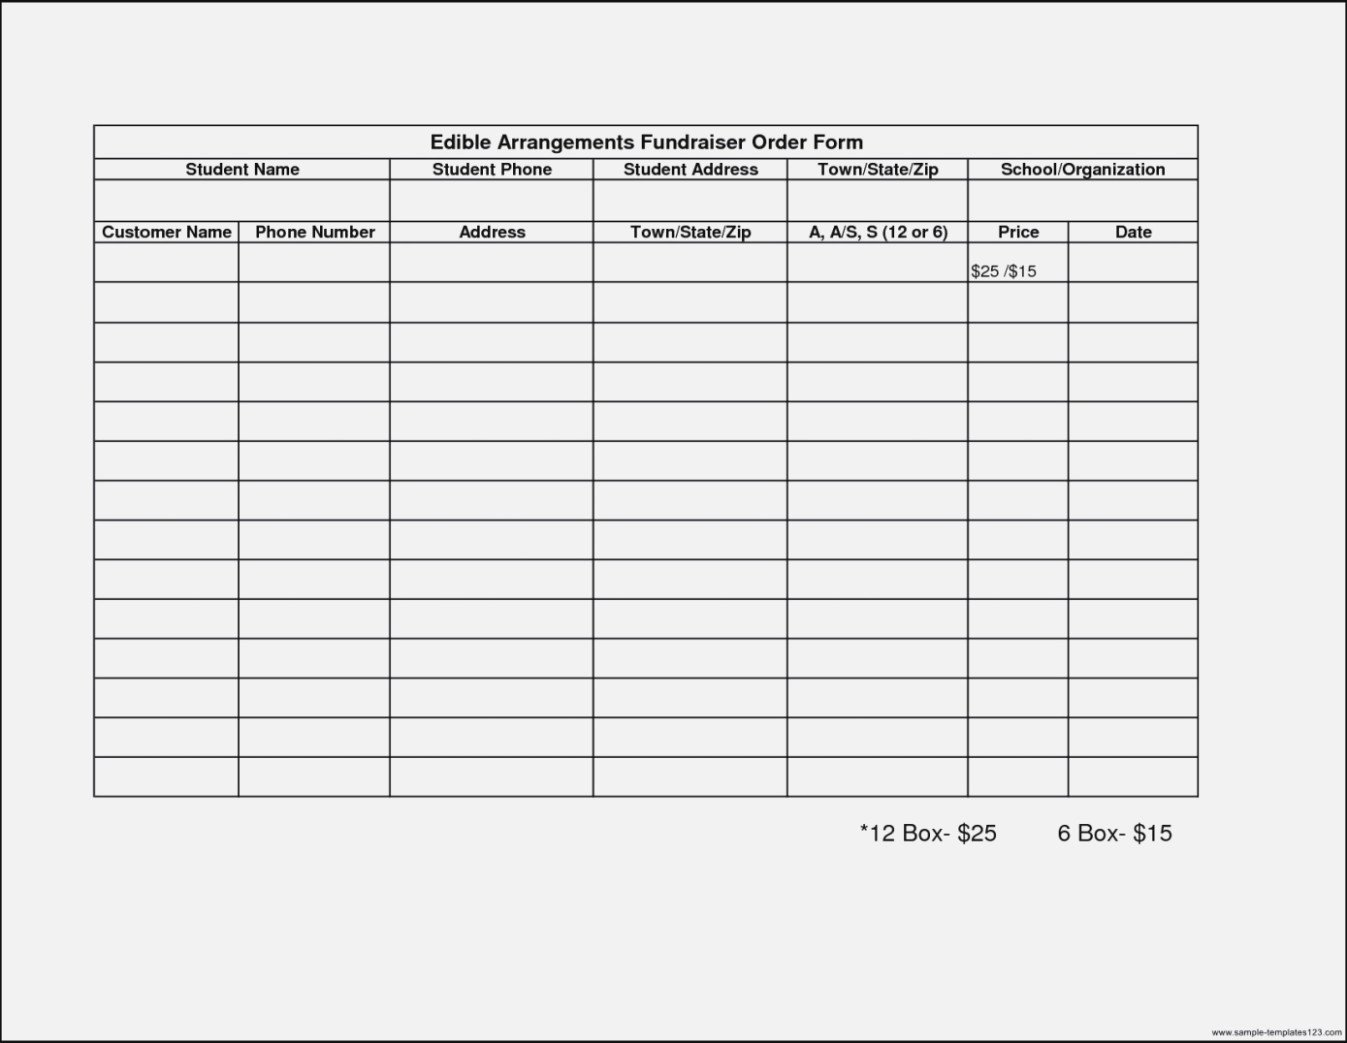 Blank Fundraiser order form Template 12 Ideas to organize Your Own Fundraiser